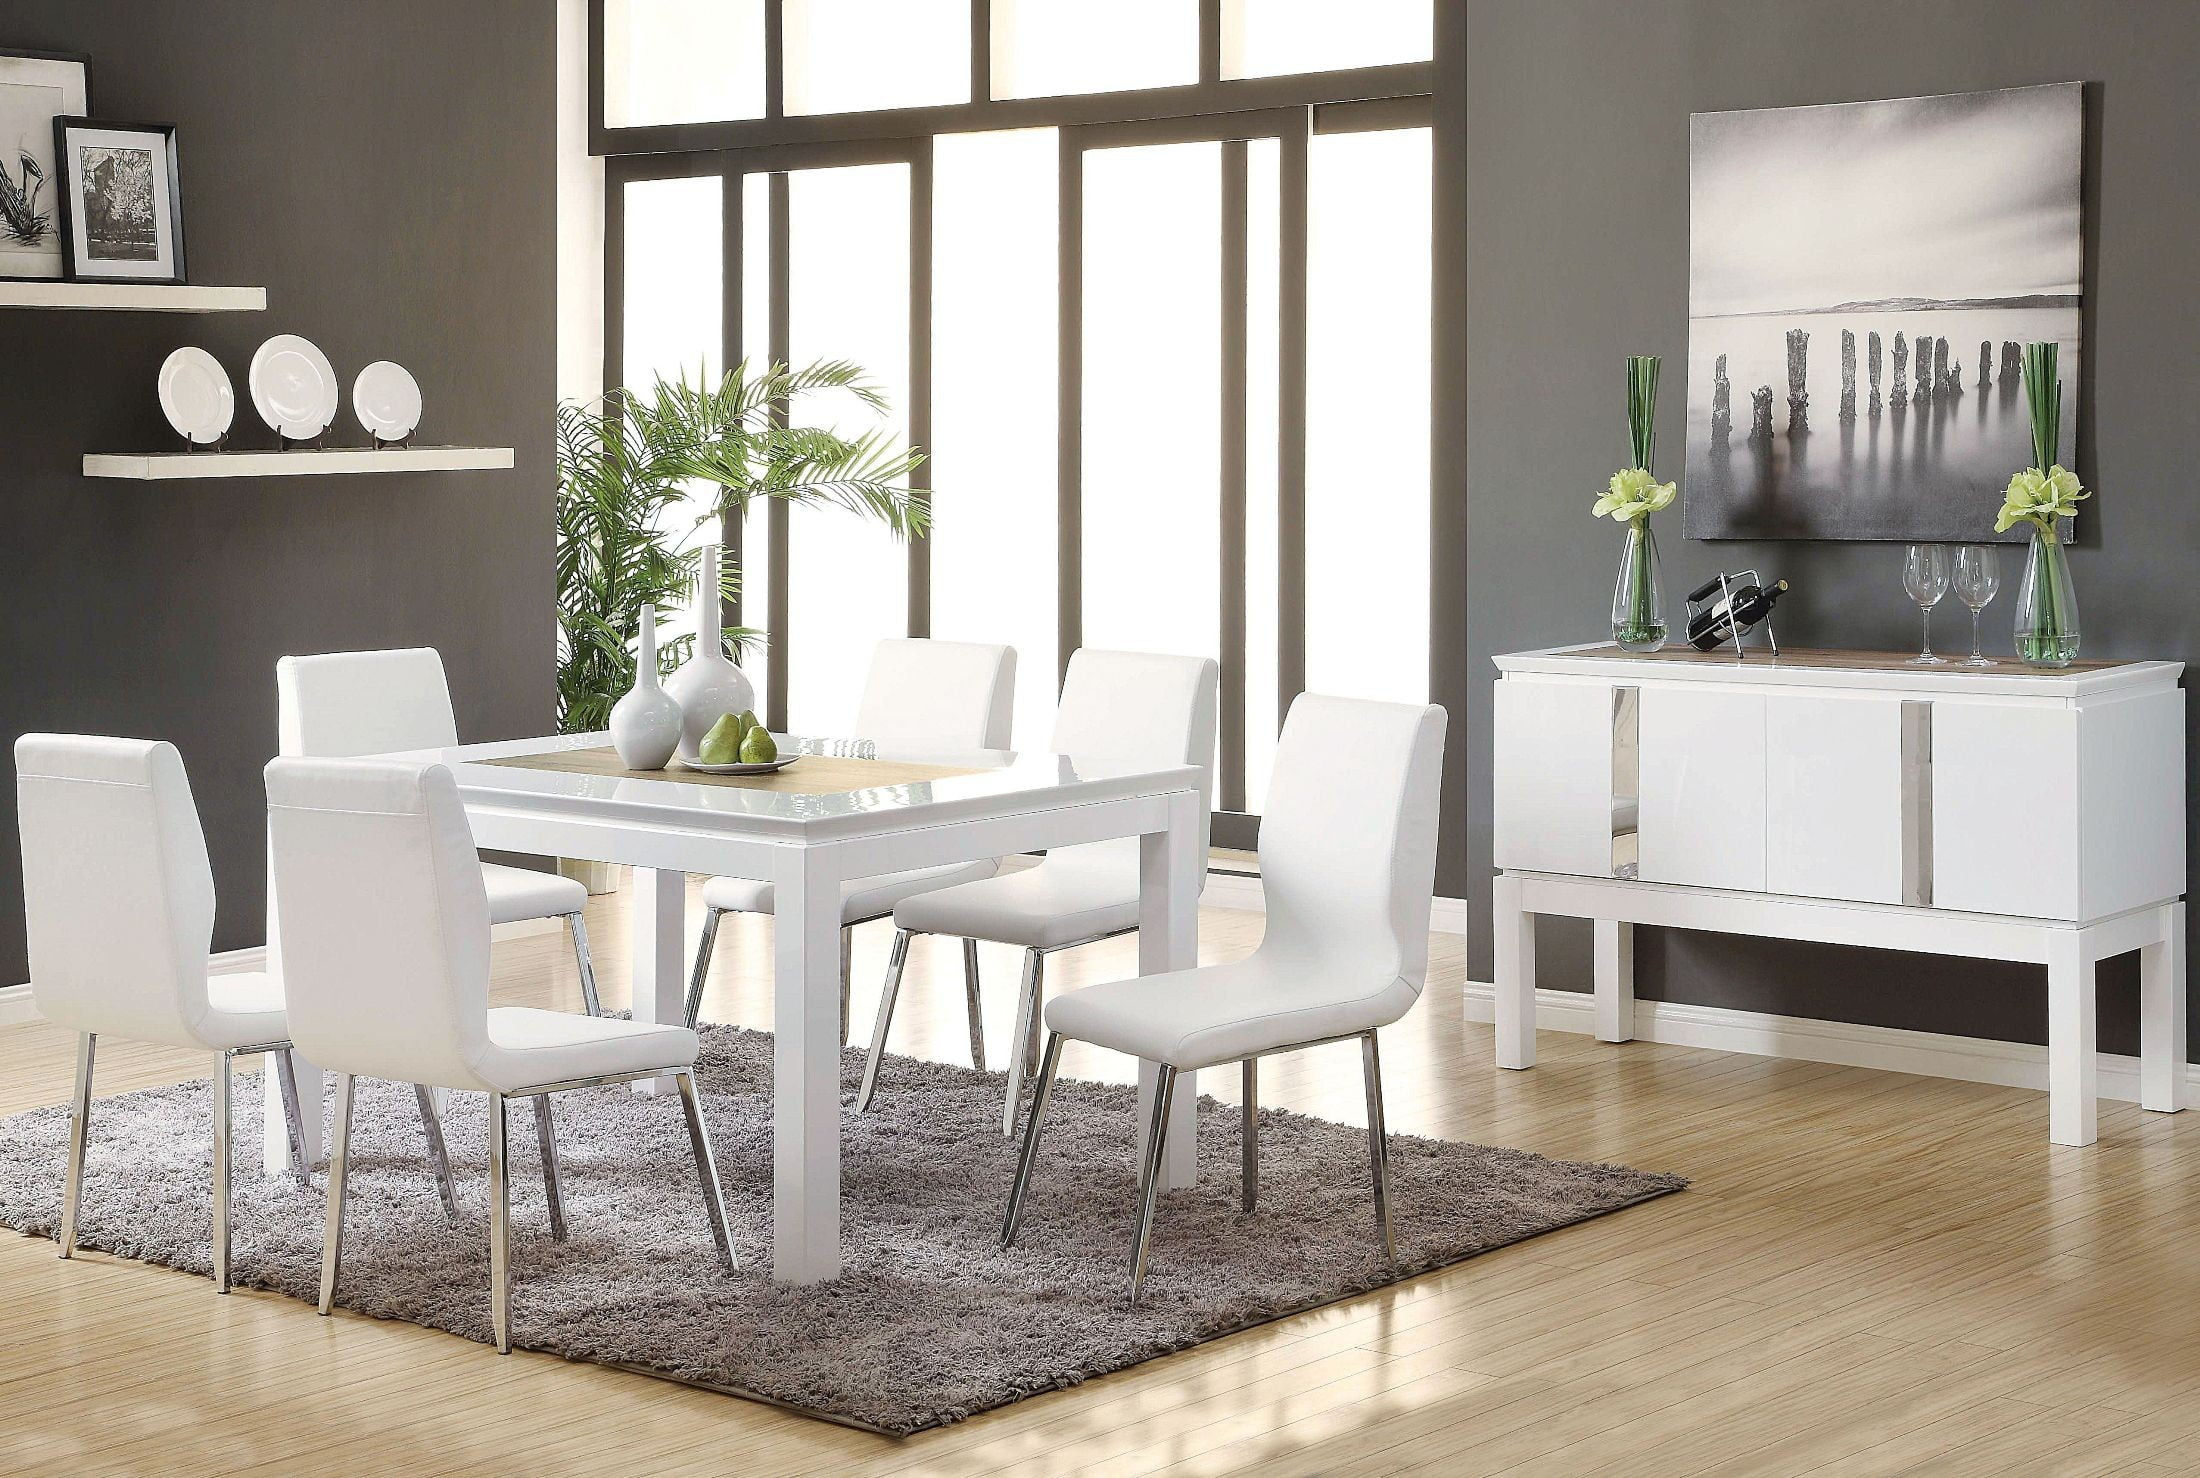 Kilee White Rectangular Dining Room Set from Acme | Coleman Furniture